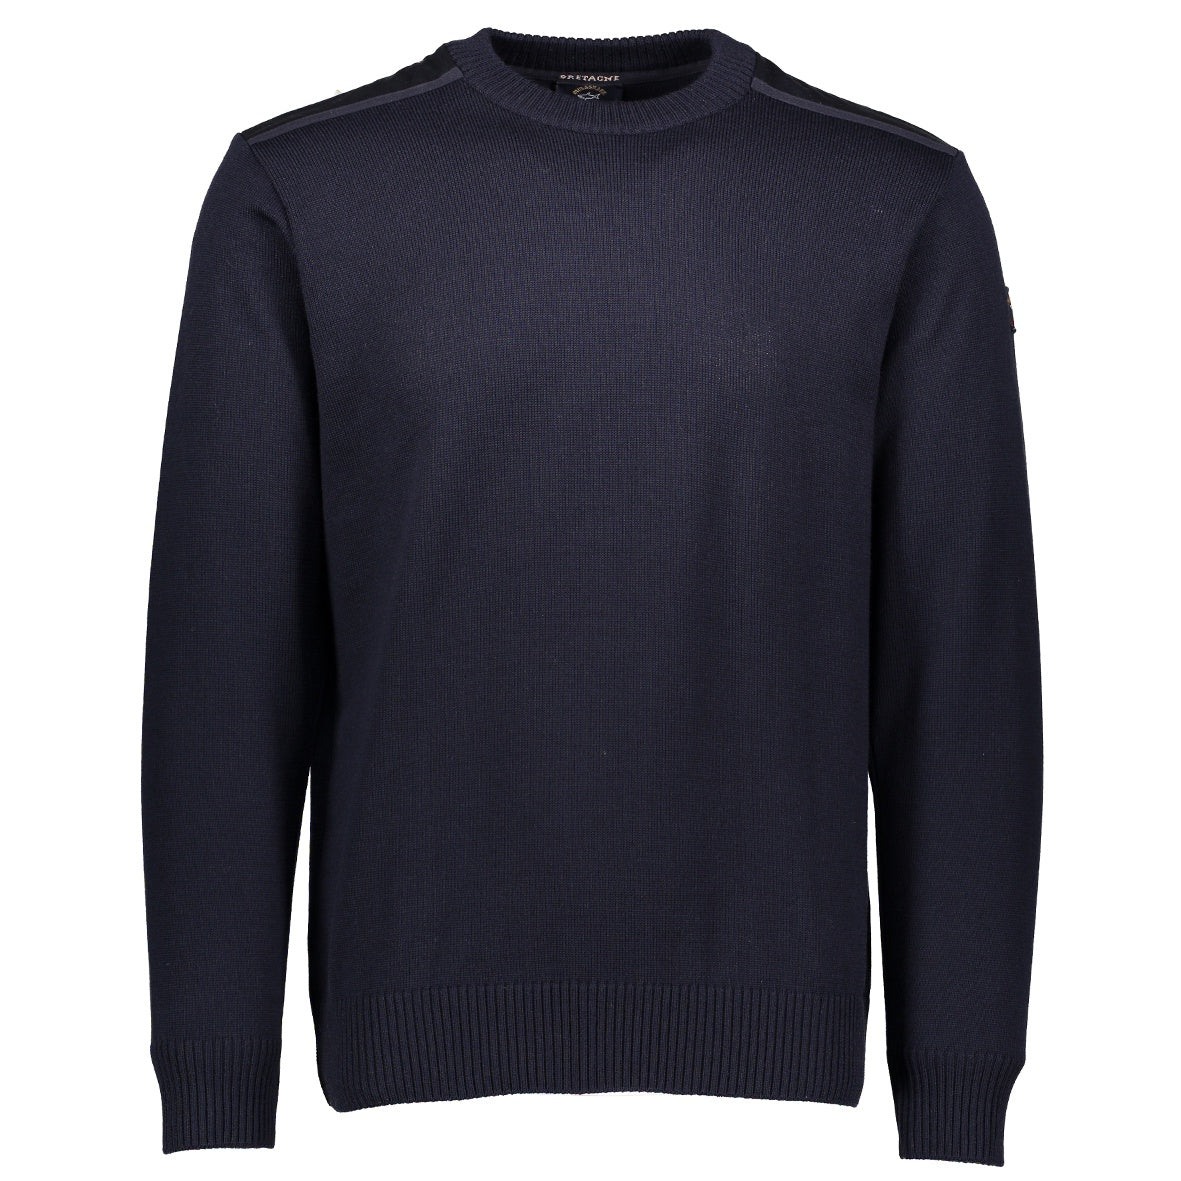 Plain Navy Crew- Large